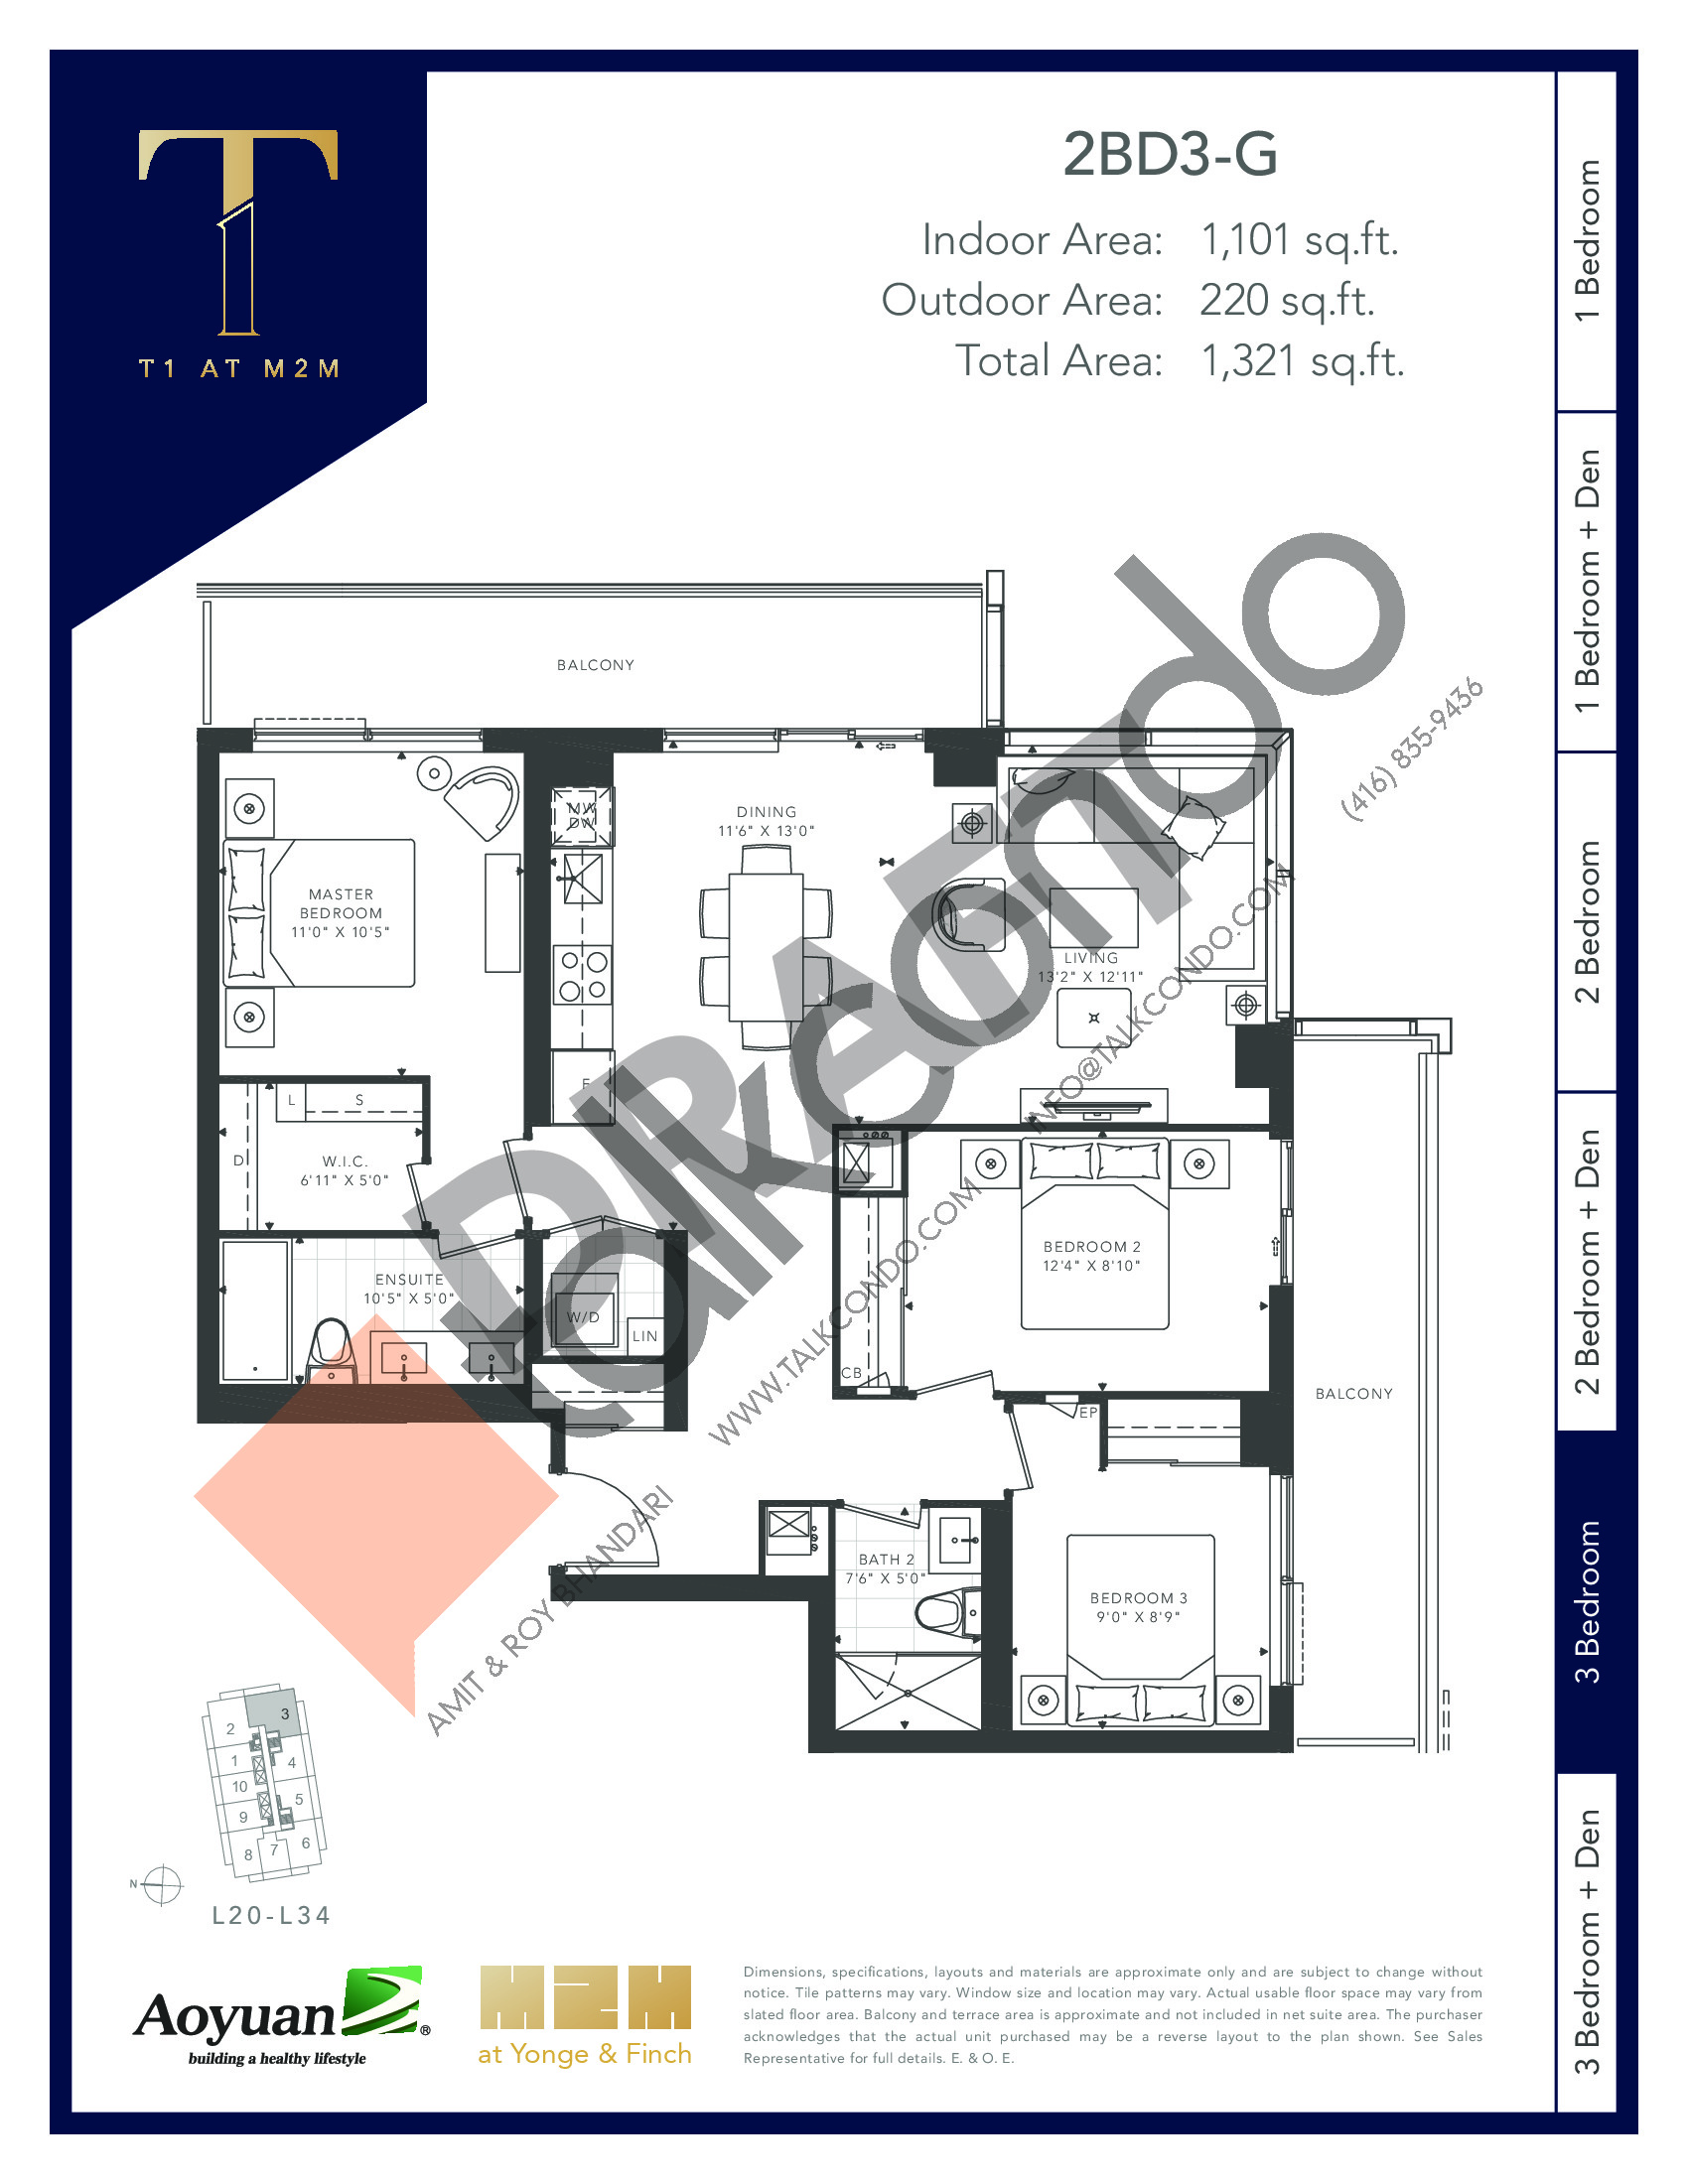 2BD3-G (Tower) Floor Plan at T1 at M2M Condos - 1101 sq.ft